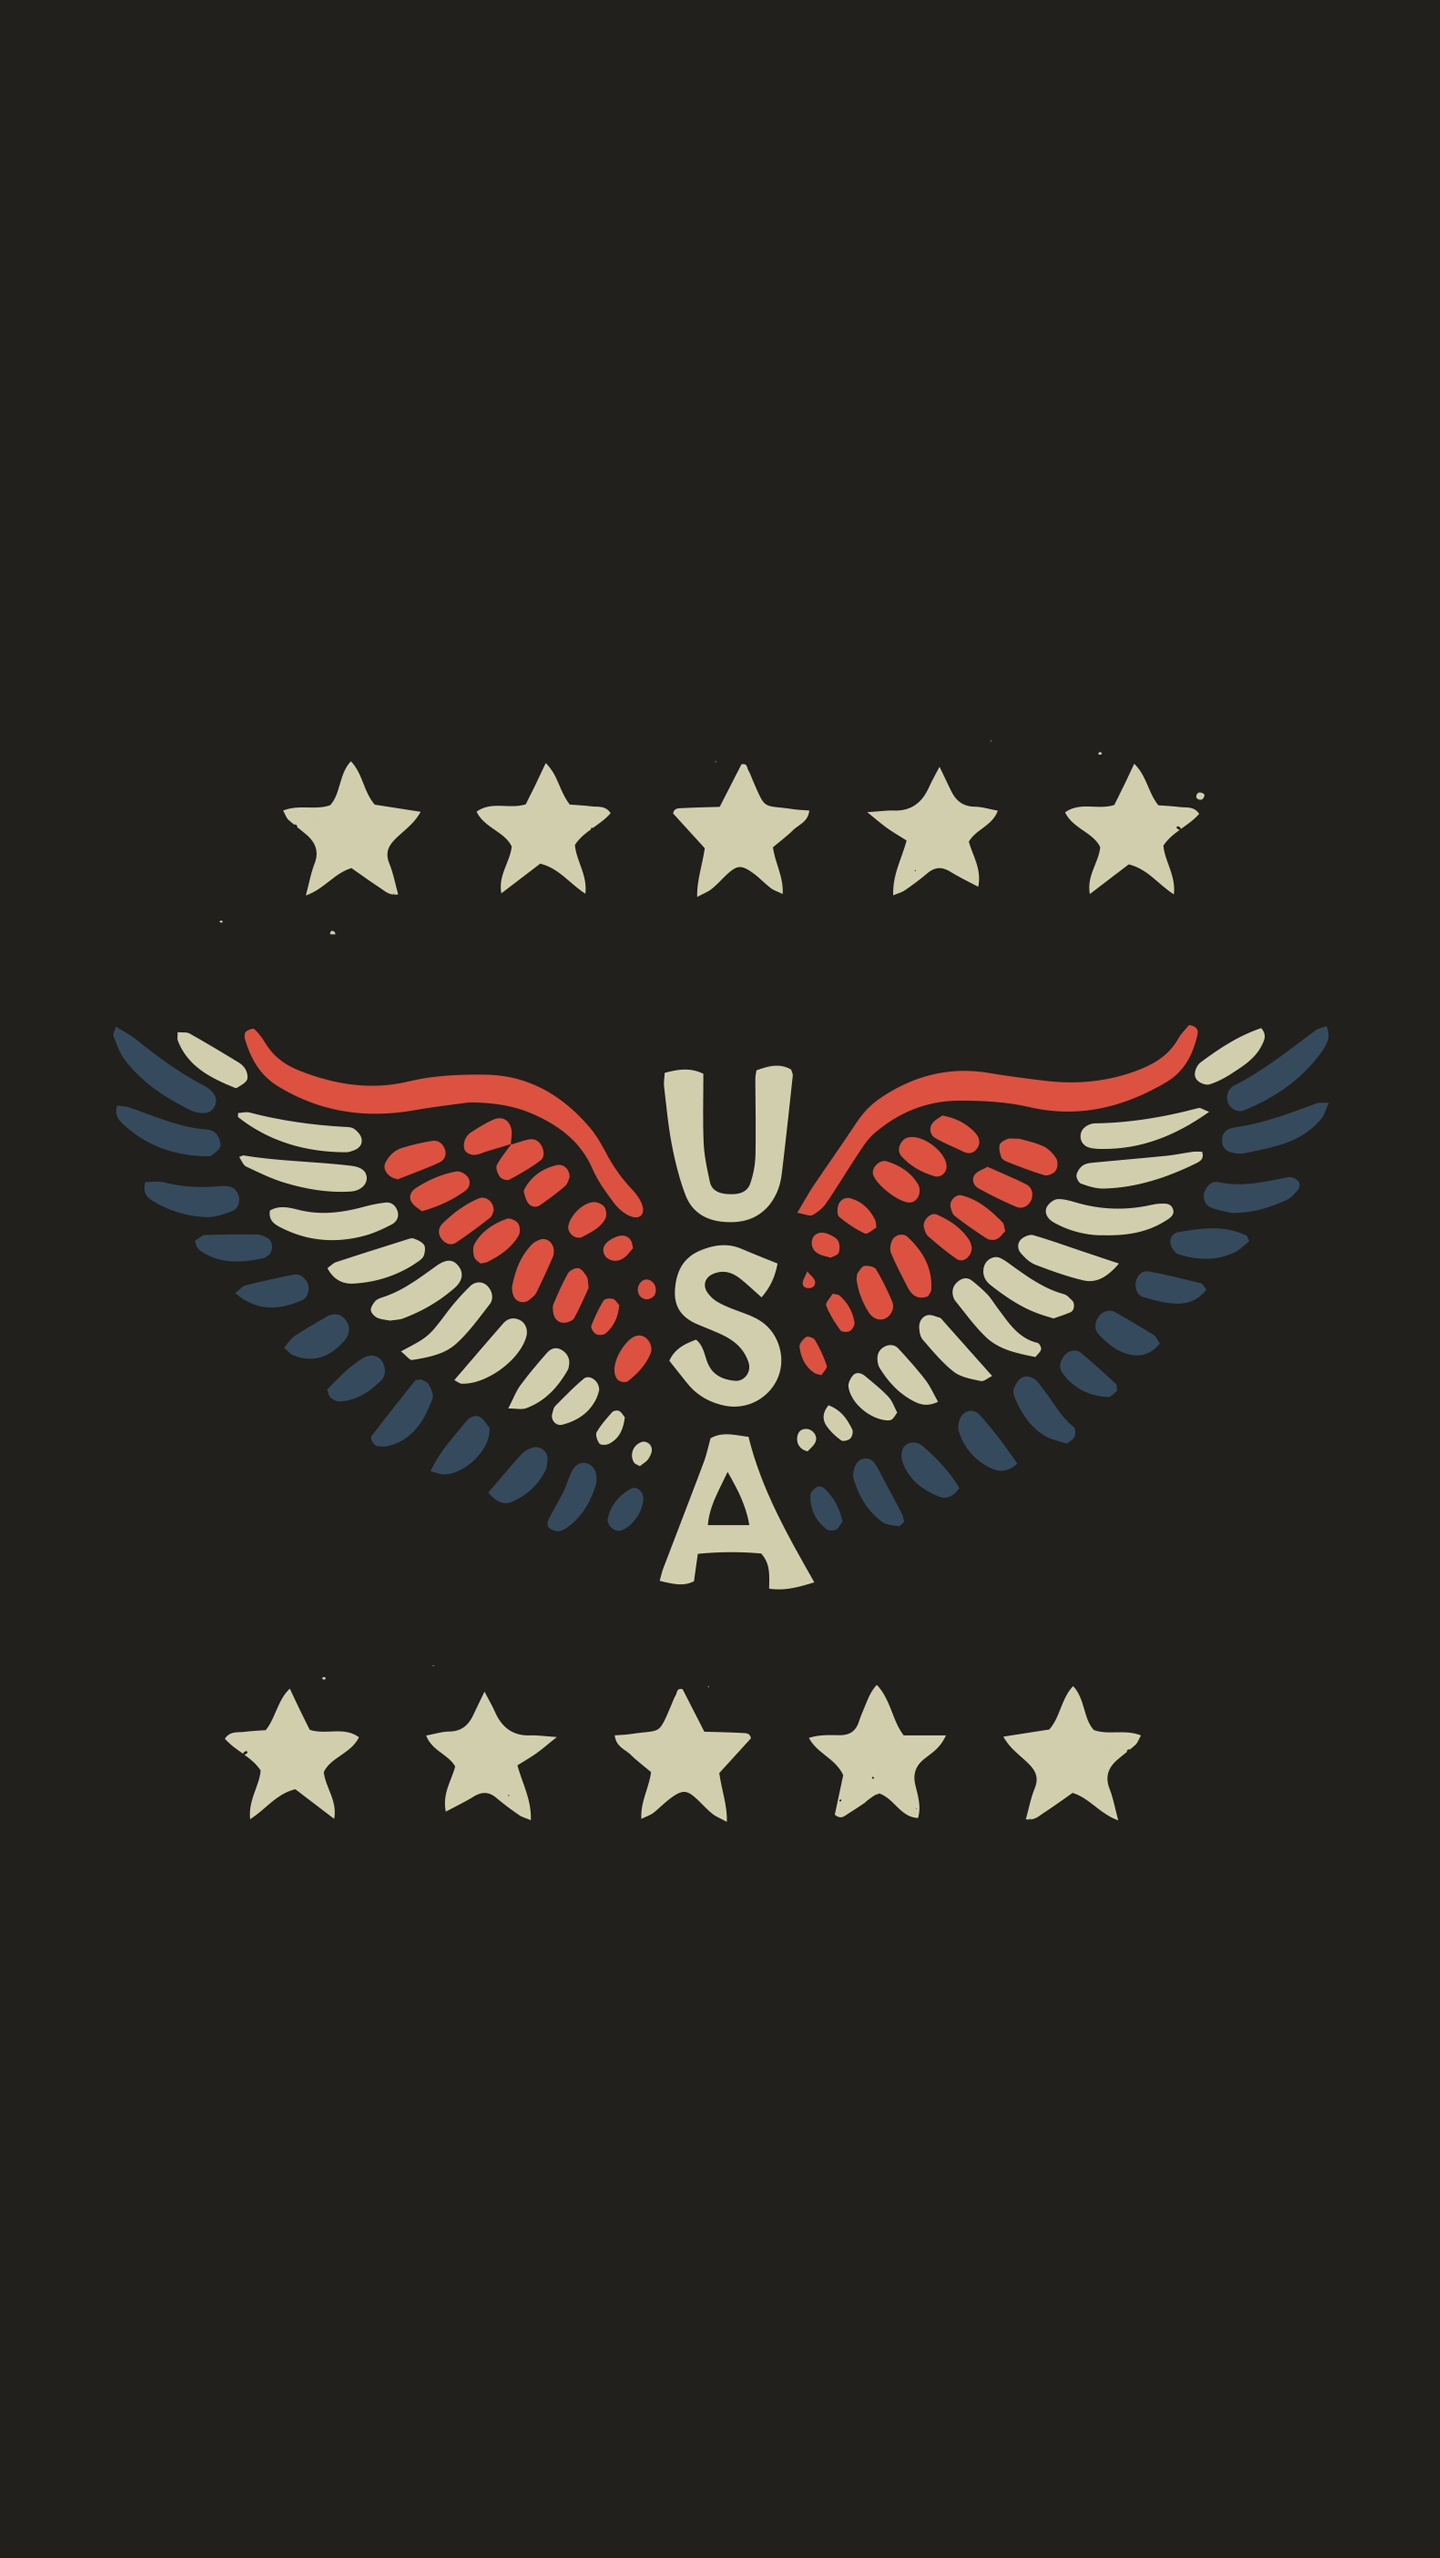 usa army logo iphone wallpaper - iphone wallpapers